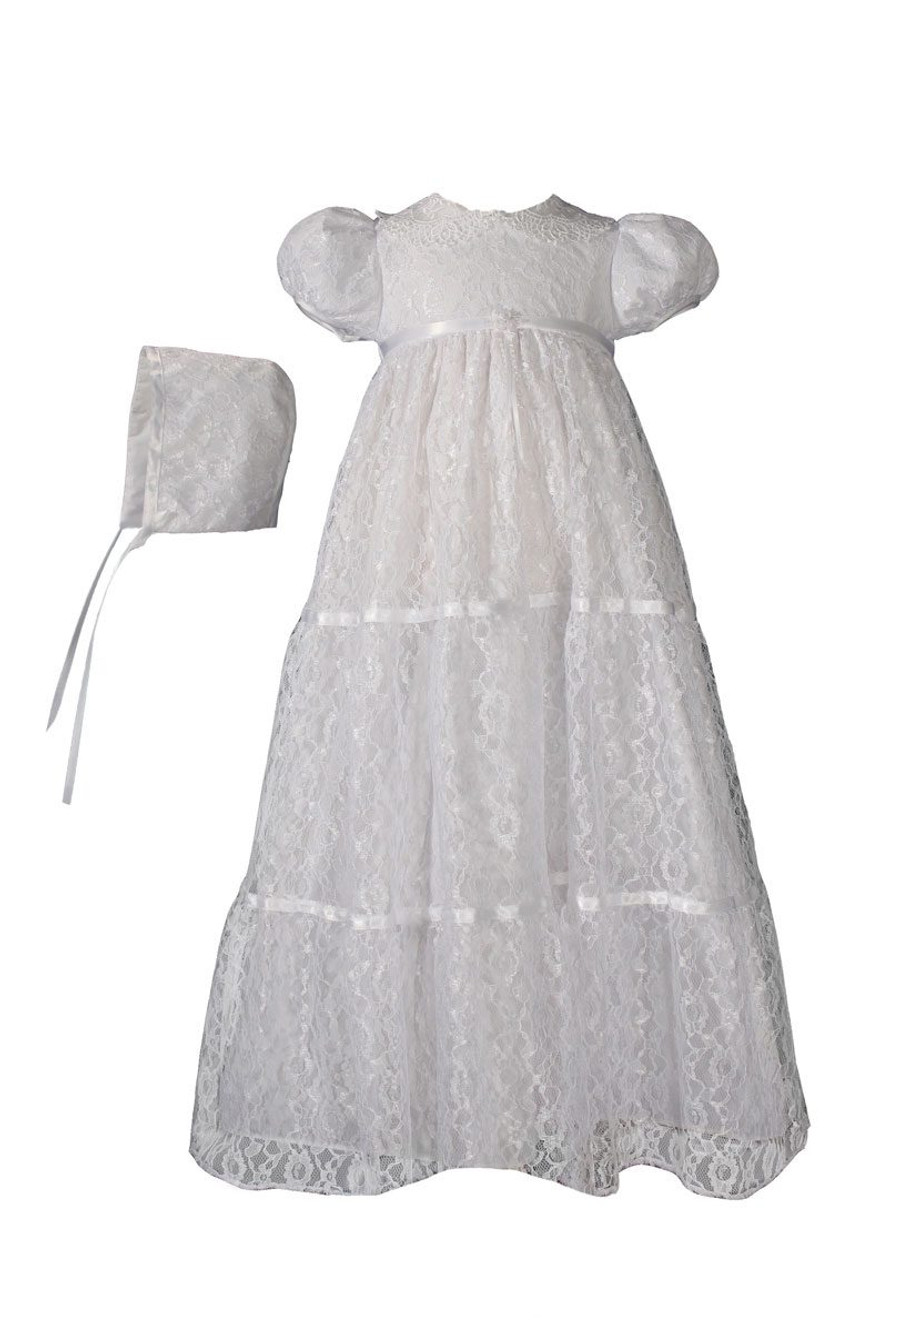 Girls Layered All Over Lace Christening Special Occasion Gown 29 Length